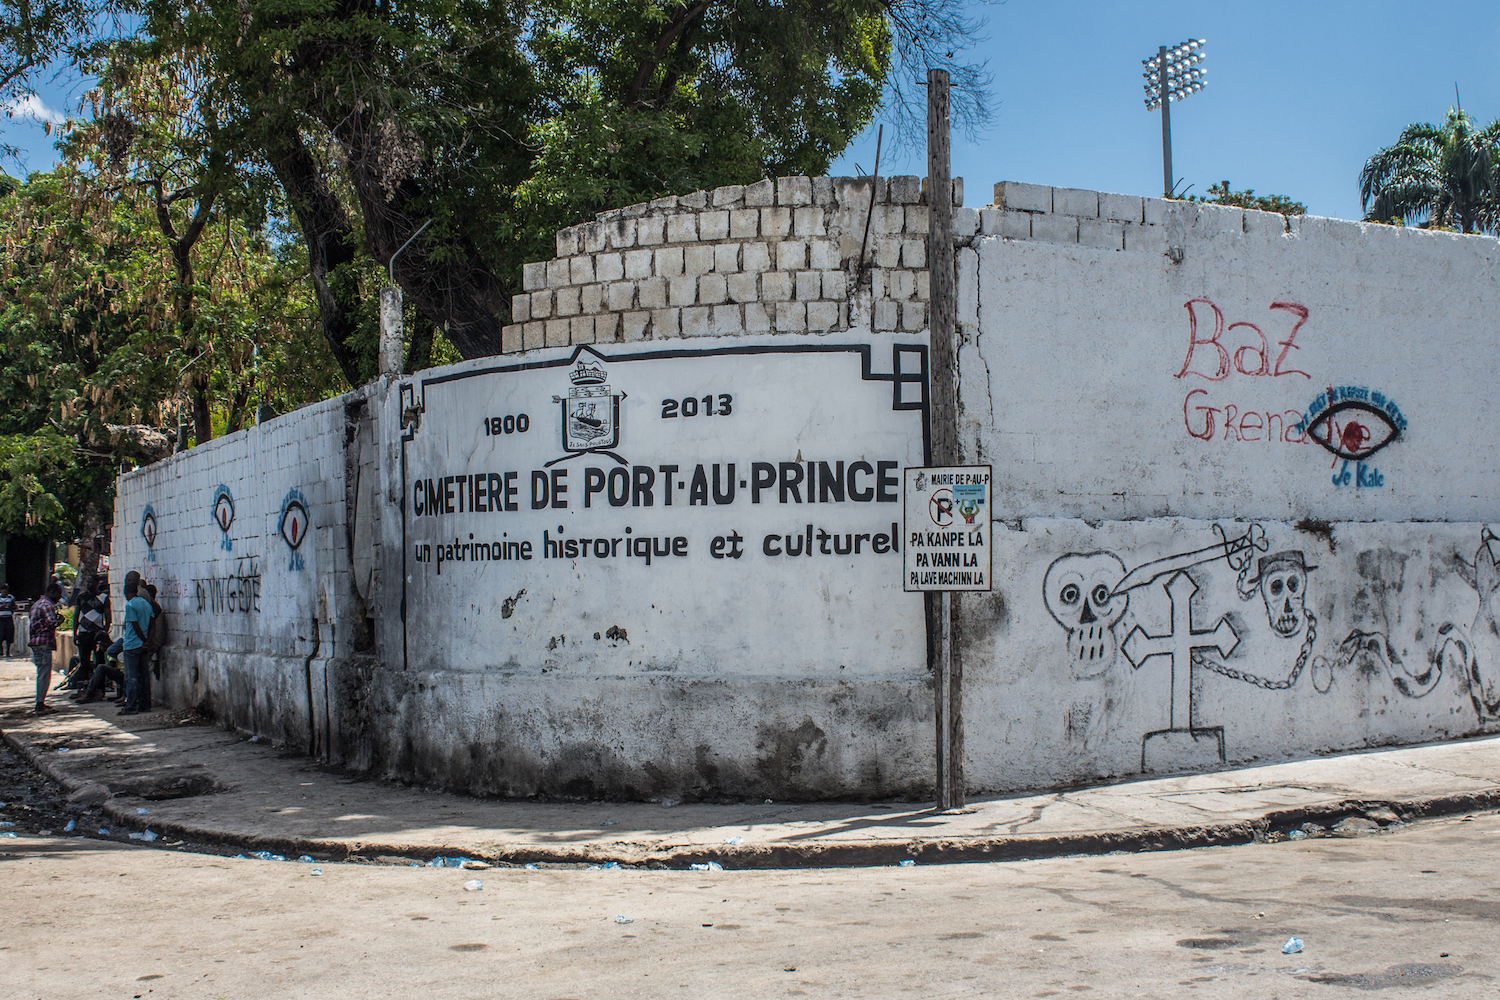 A painted sign announces the Cimetière de Port-au-Prince © Darmon Richter http://www.thebohemianblog.com/2015/04/haitian-vodou-port-au-prince.html